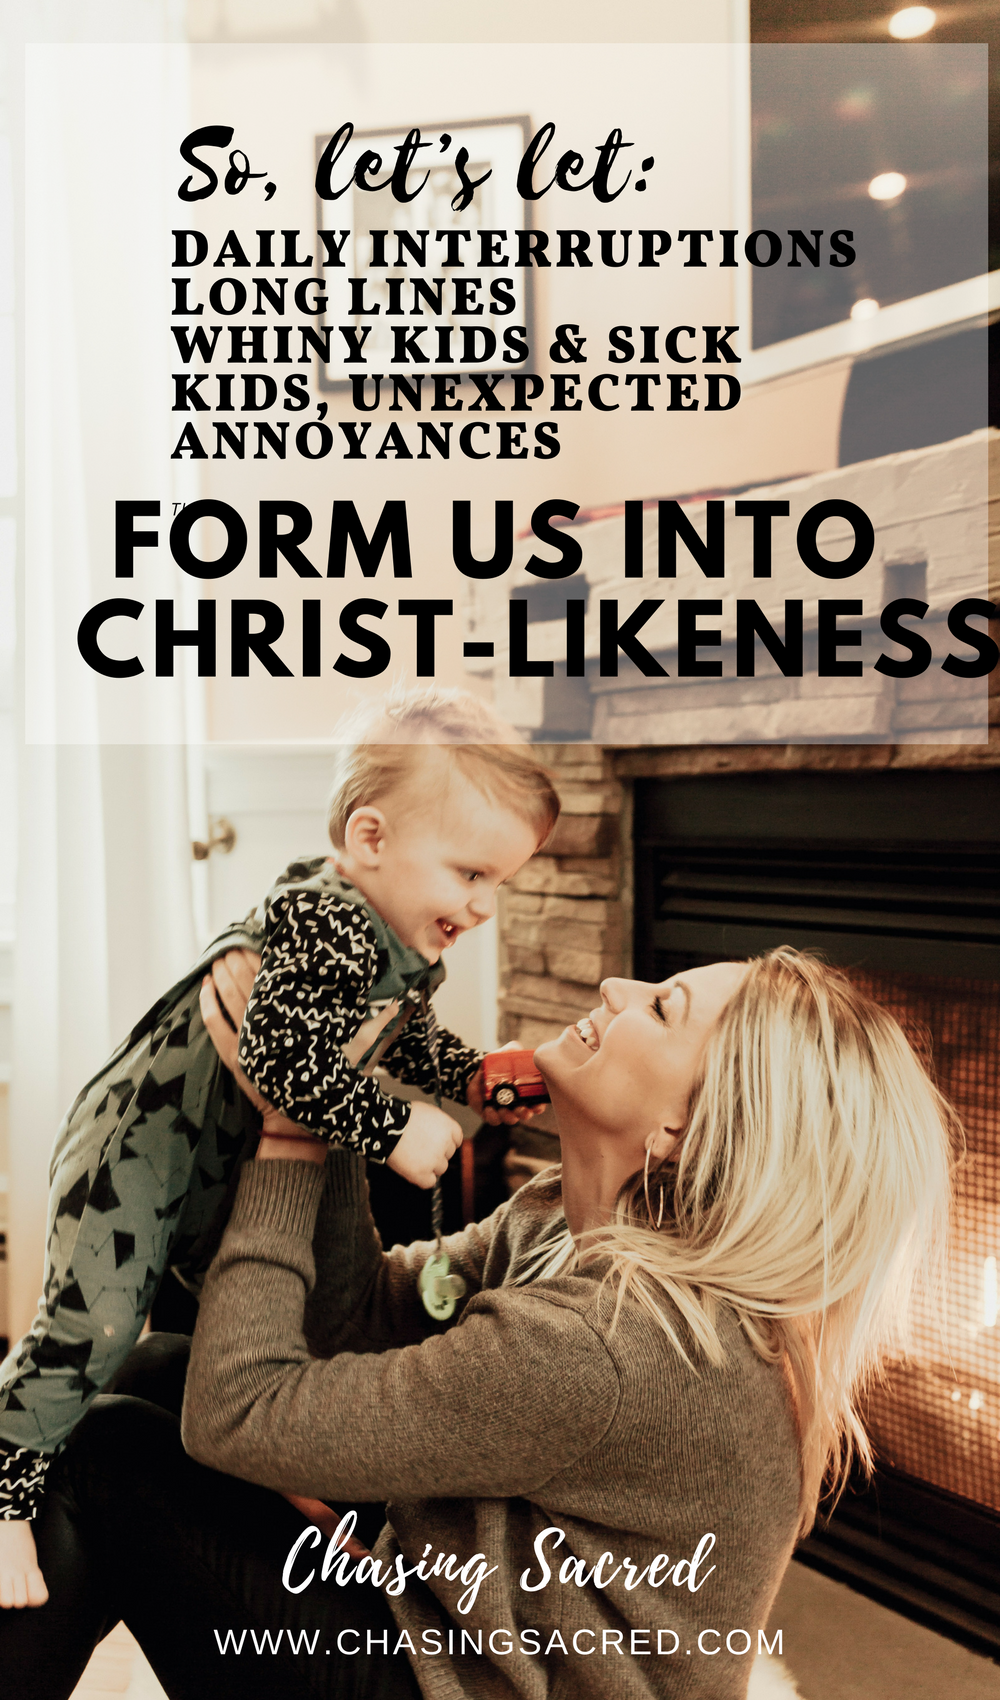 So let's let daily interruptions, long lines, whiny kids and sick kids, unexpected annoyances form us into christ-likeness